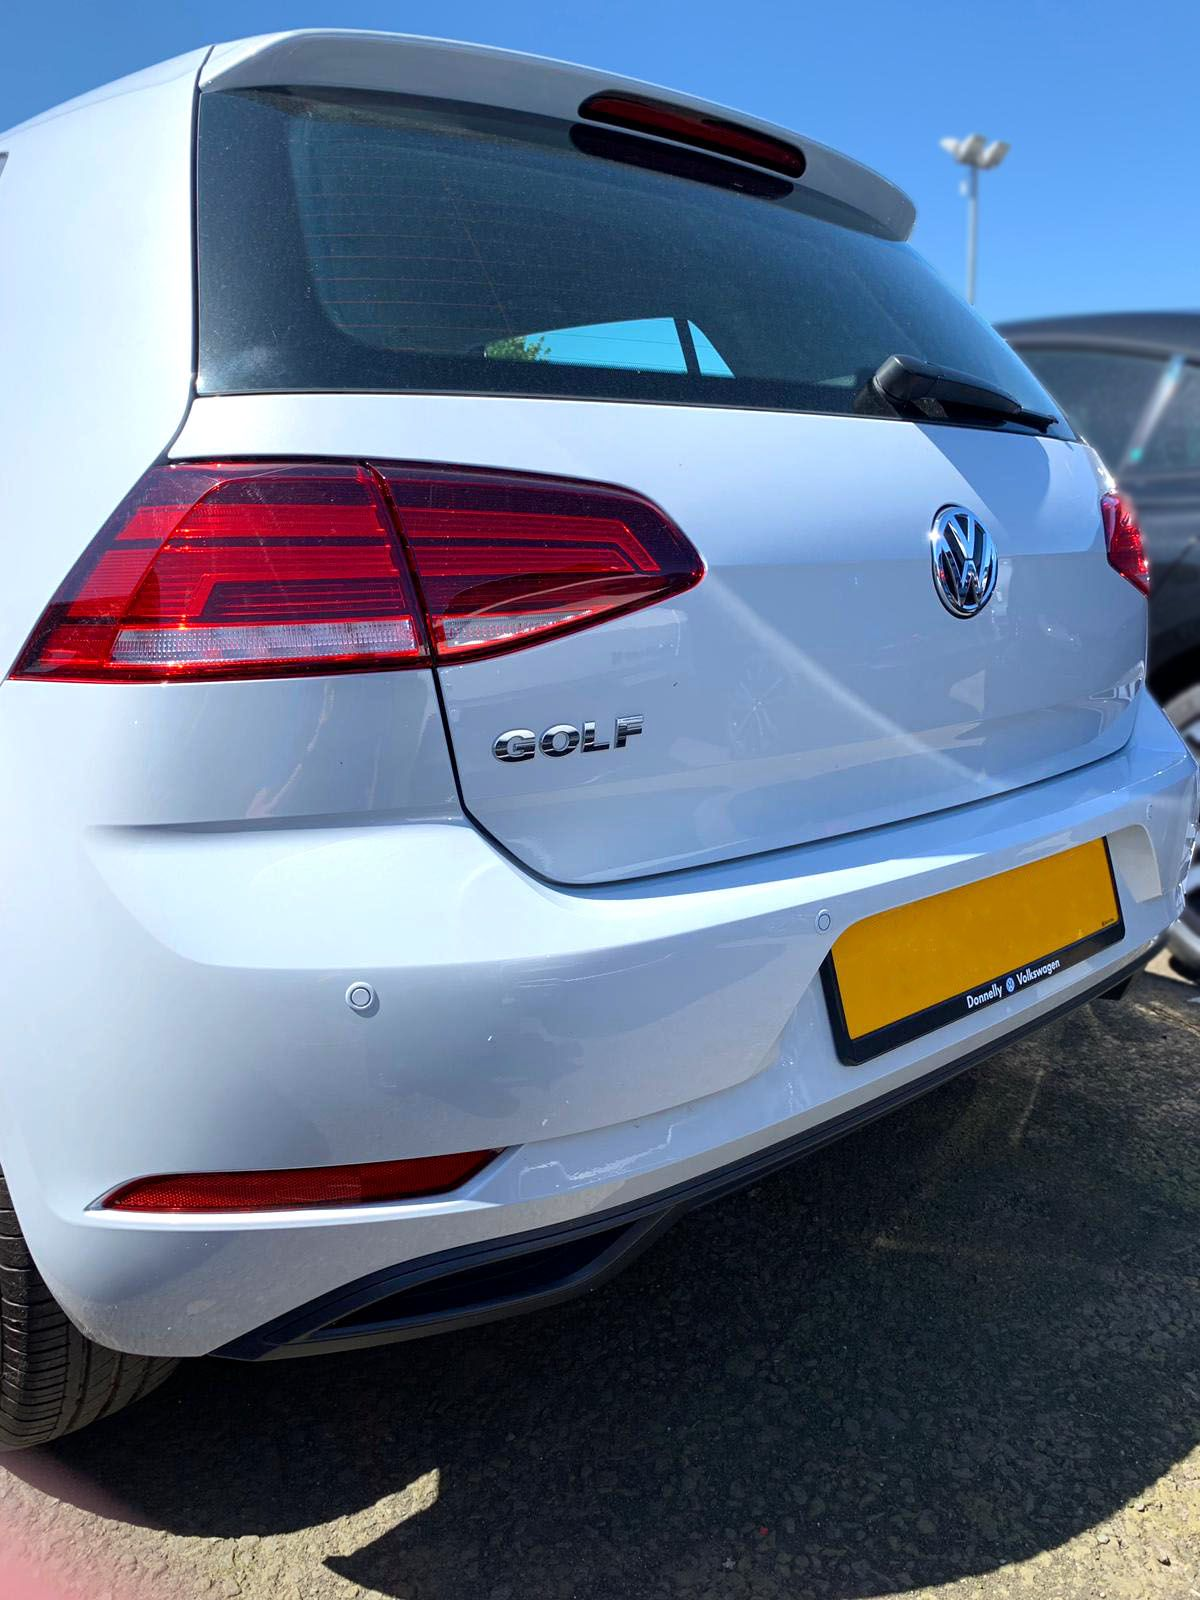 Volkswagen Golf Mk7 - Rear sensor installation painted to match cars exact paint